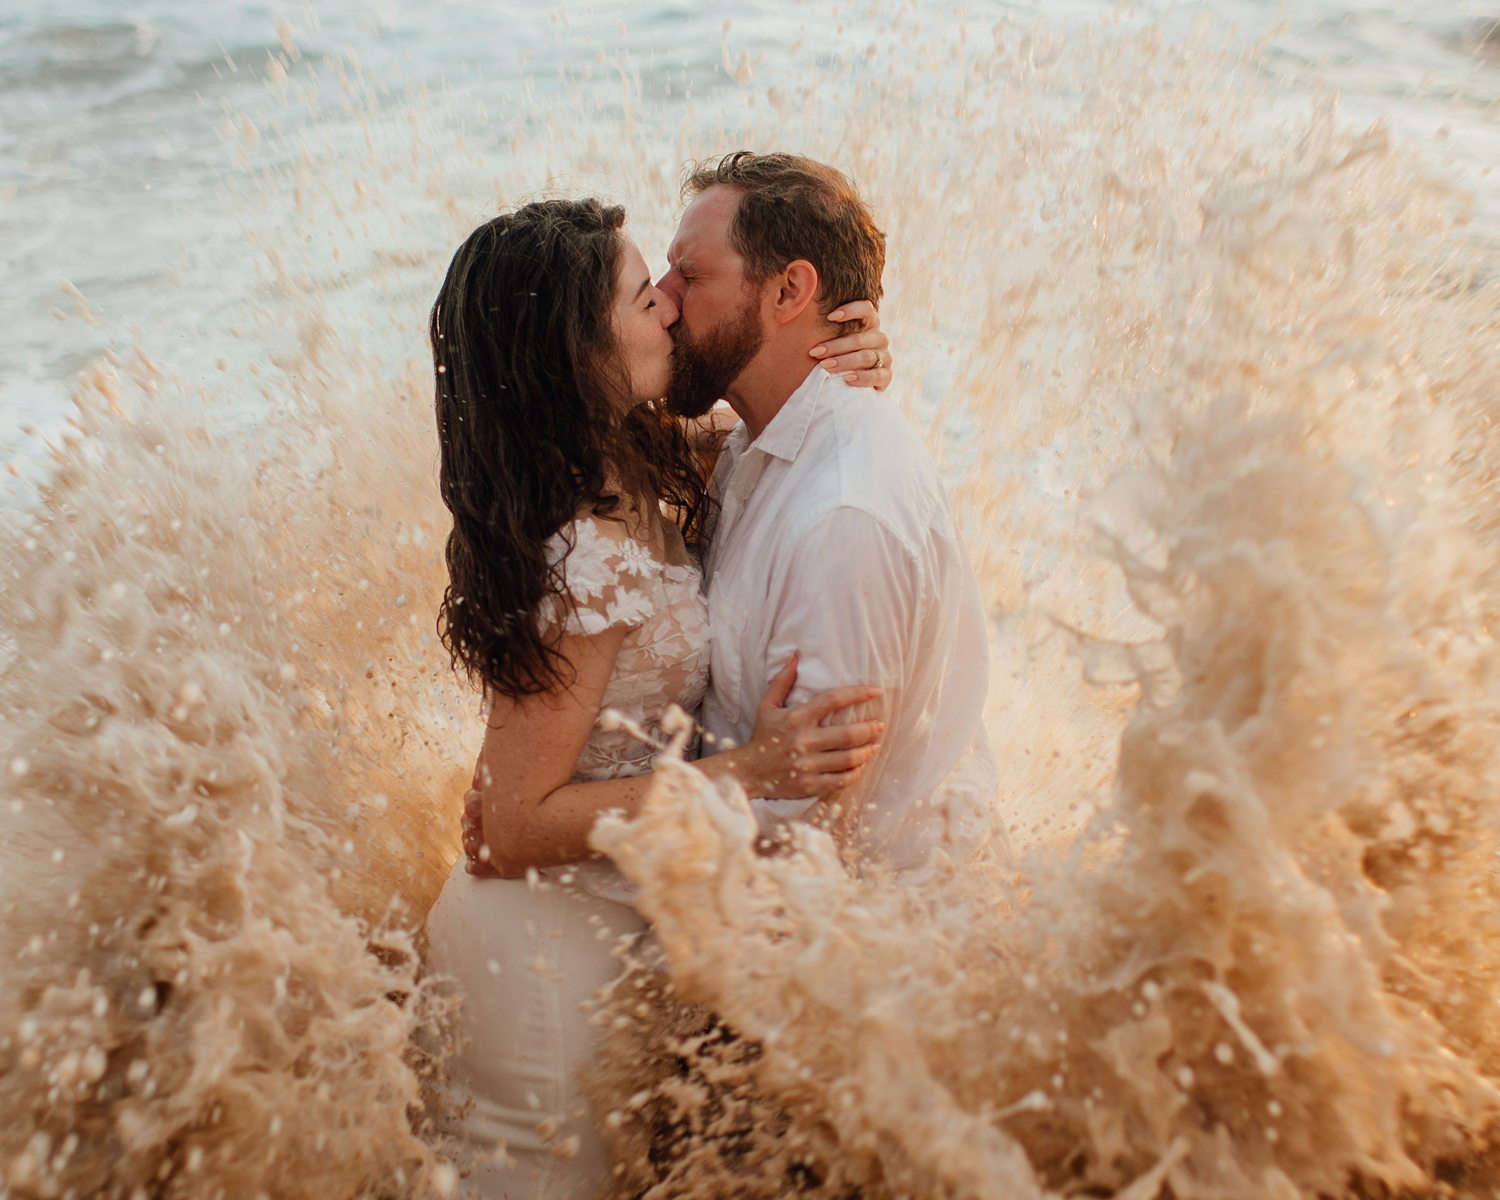 wave crash beach wedding photoshoot